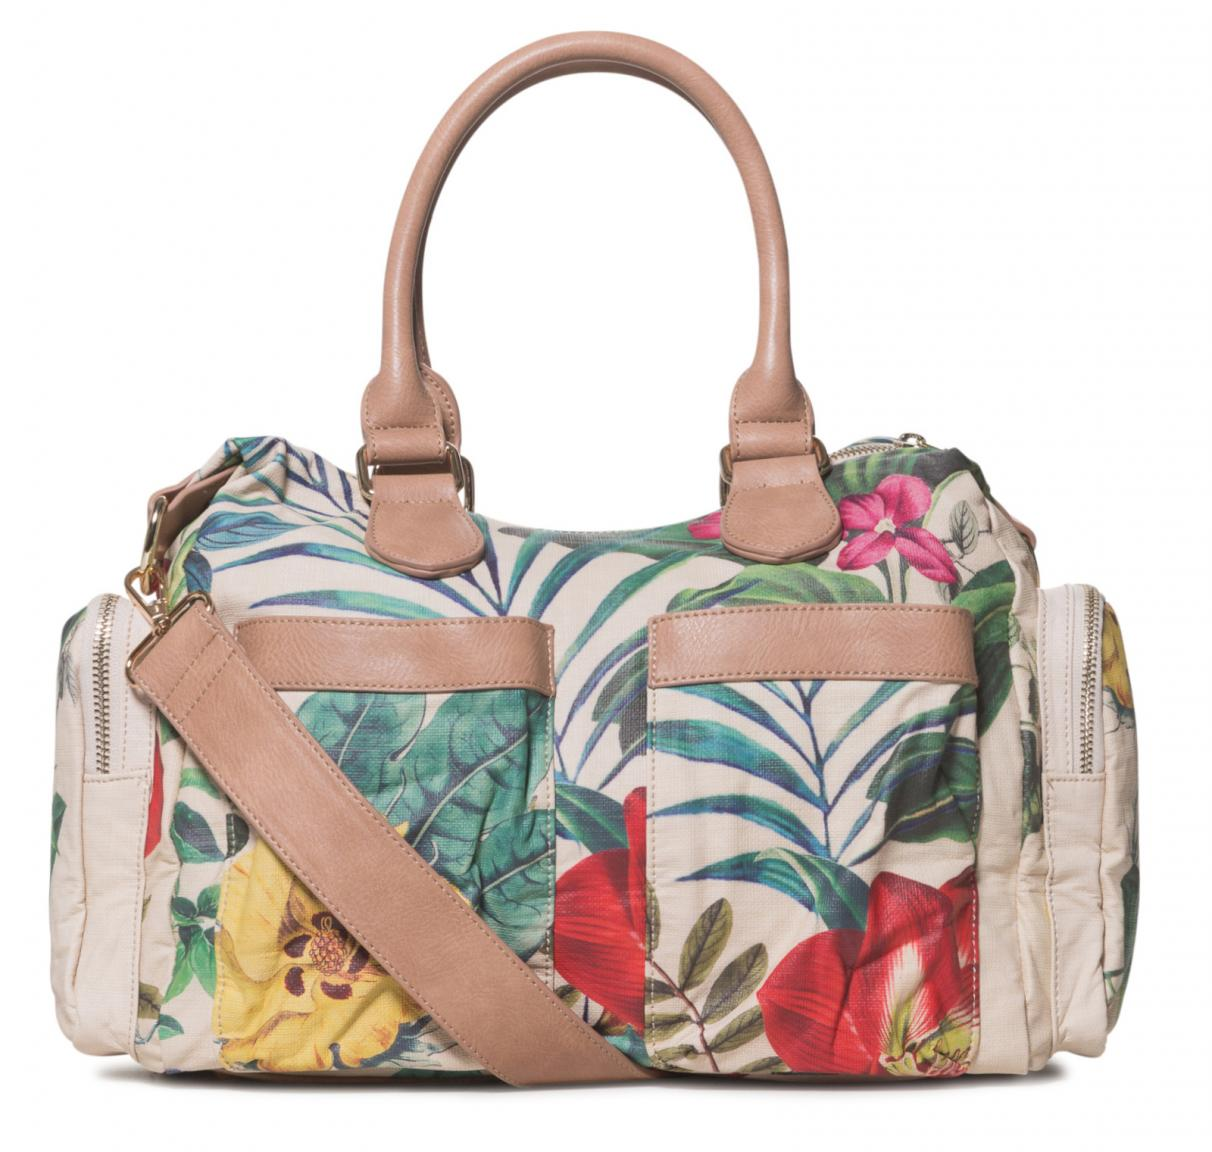 Henkeltasche Desigual Clio London Medium beige Blumen